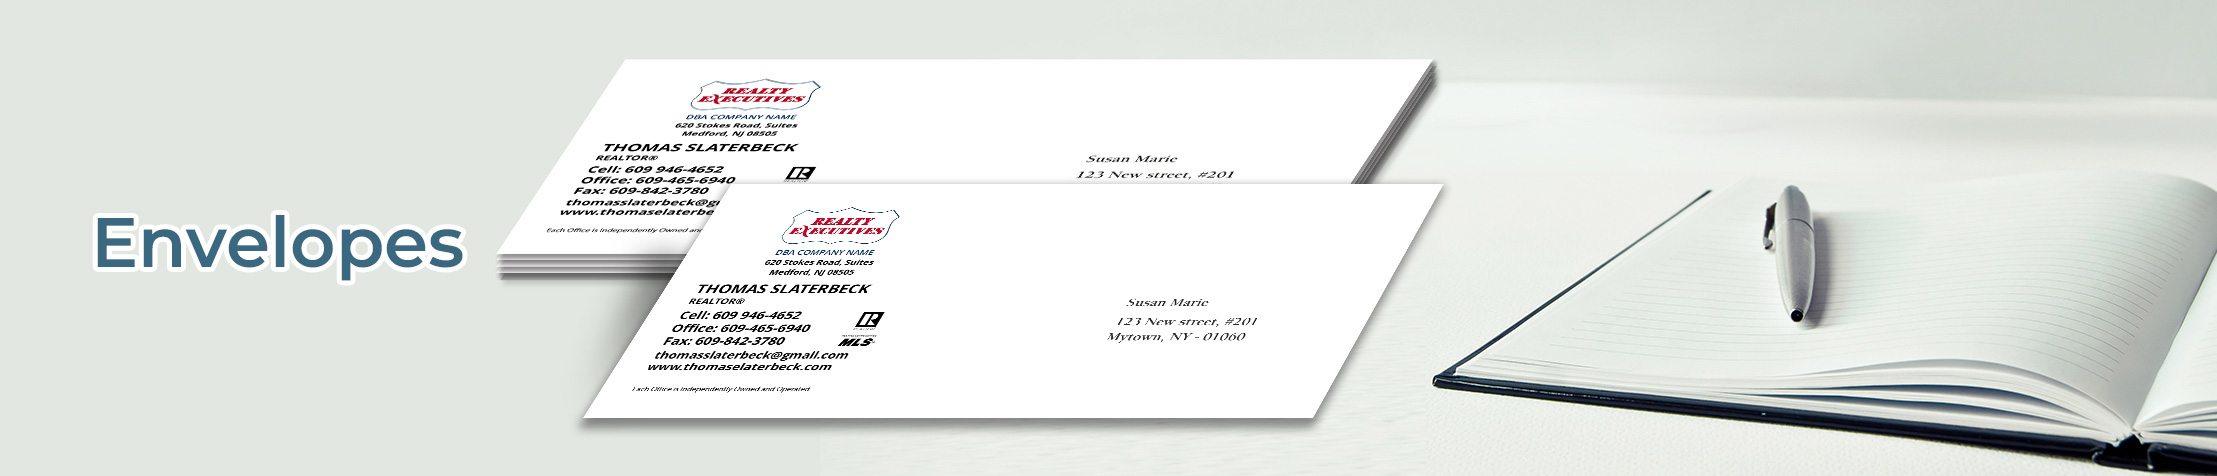 Realty Executives Real Estate #10 Envelopes - Realty Executives - Custom Stationery Templates for Realty Executives Offices and Real Estate Agents | BestPrintBuy.com